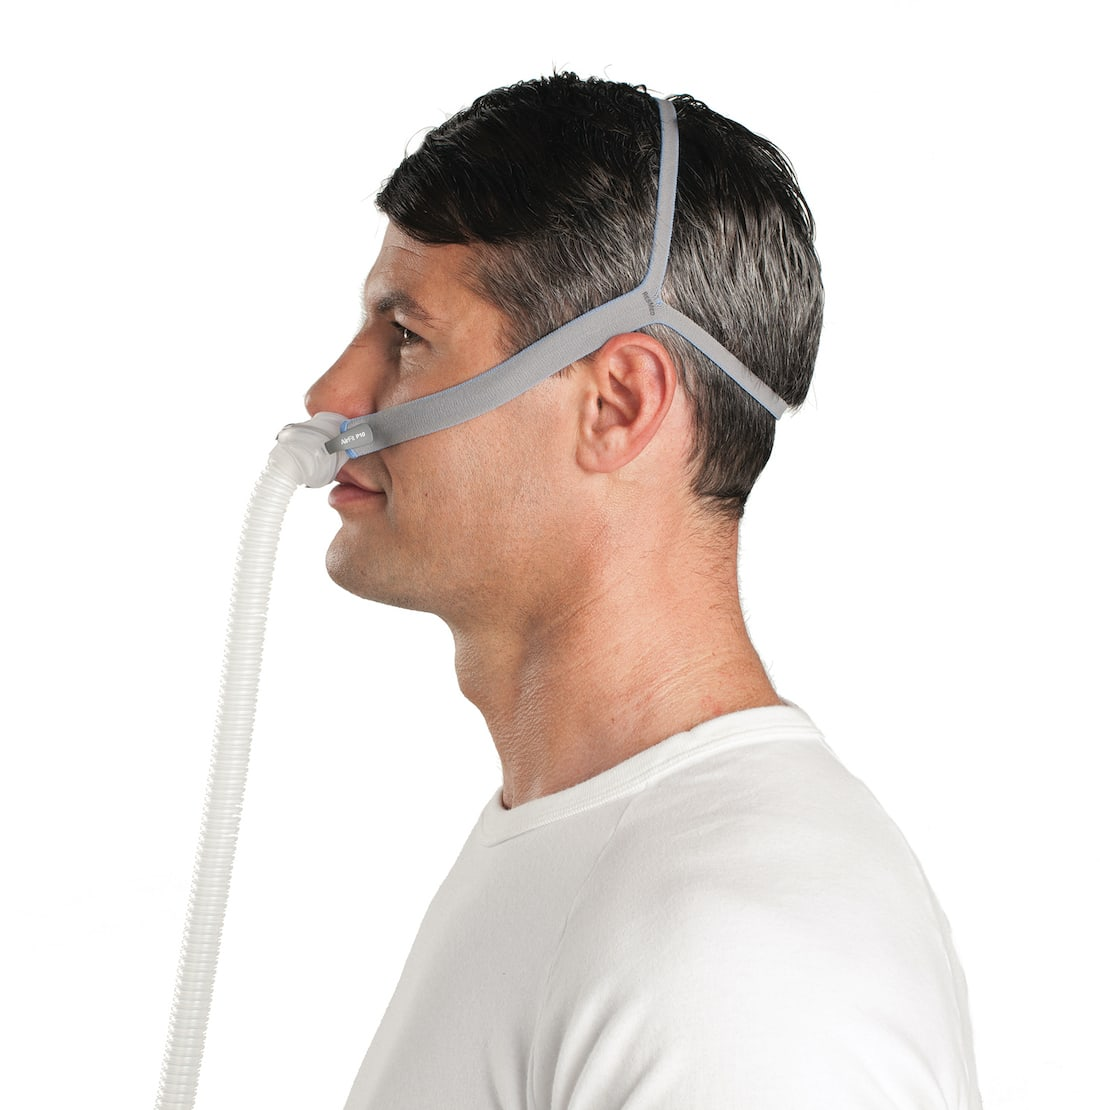 Side view of man wearing an AirFit P10 mask